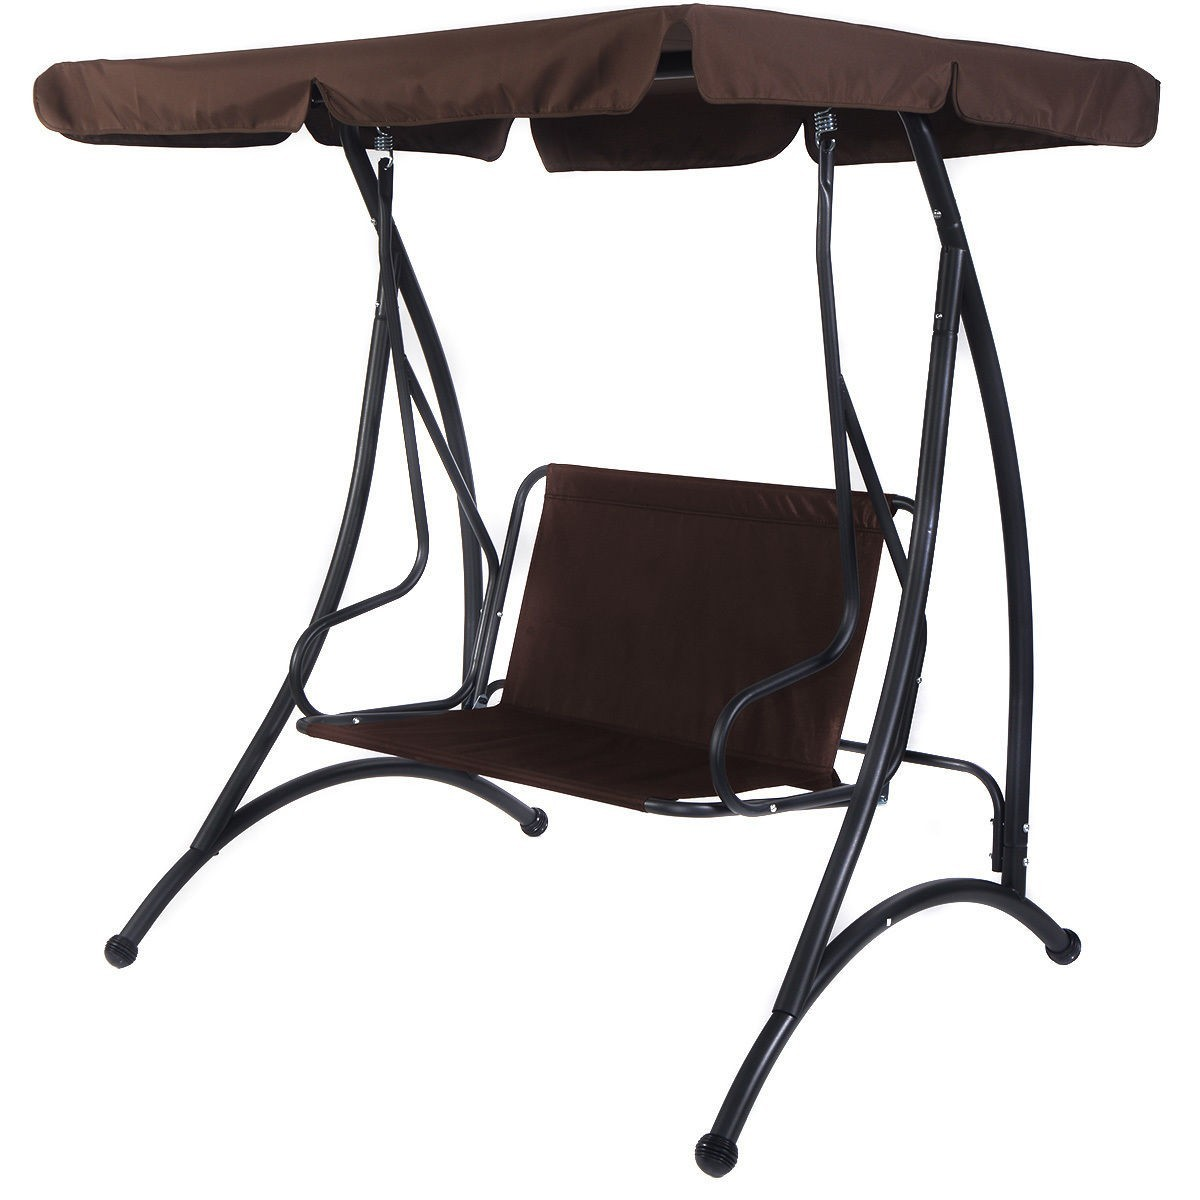 2 Person Canopy Swing Chair Patio Hammock Seat Cushioned Furniture Steel Brown